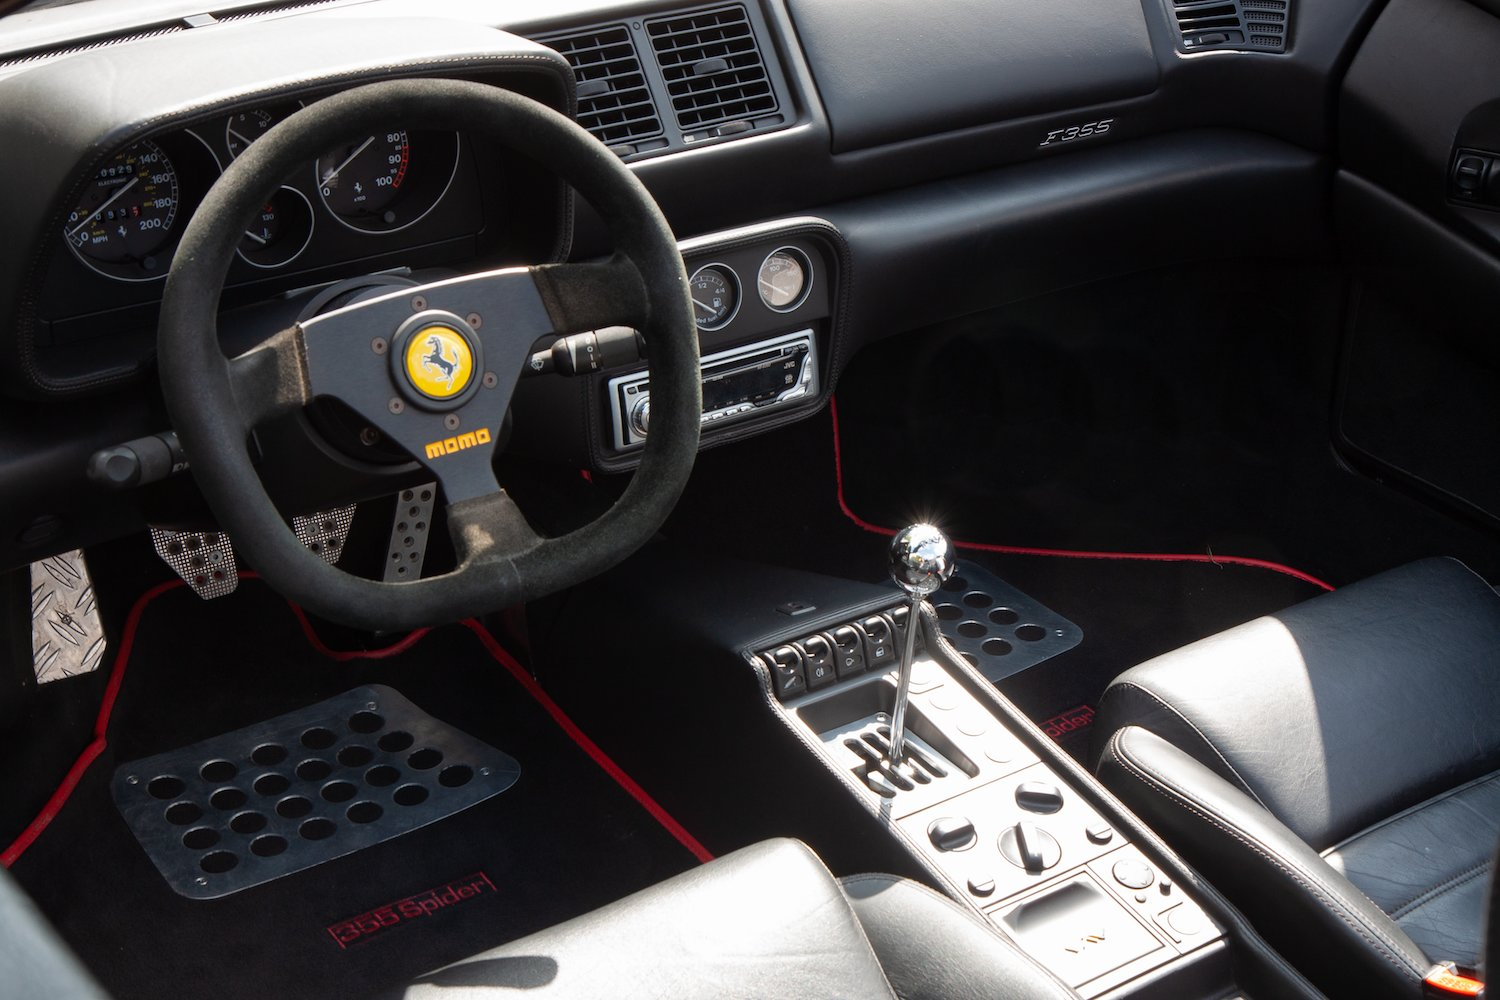 1996 Ferrari F355 Spider Manual LHD For Sale (picture 3 of 6)